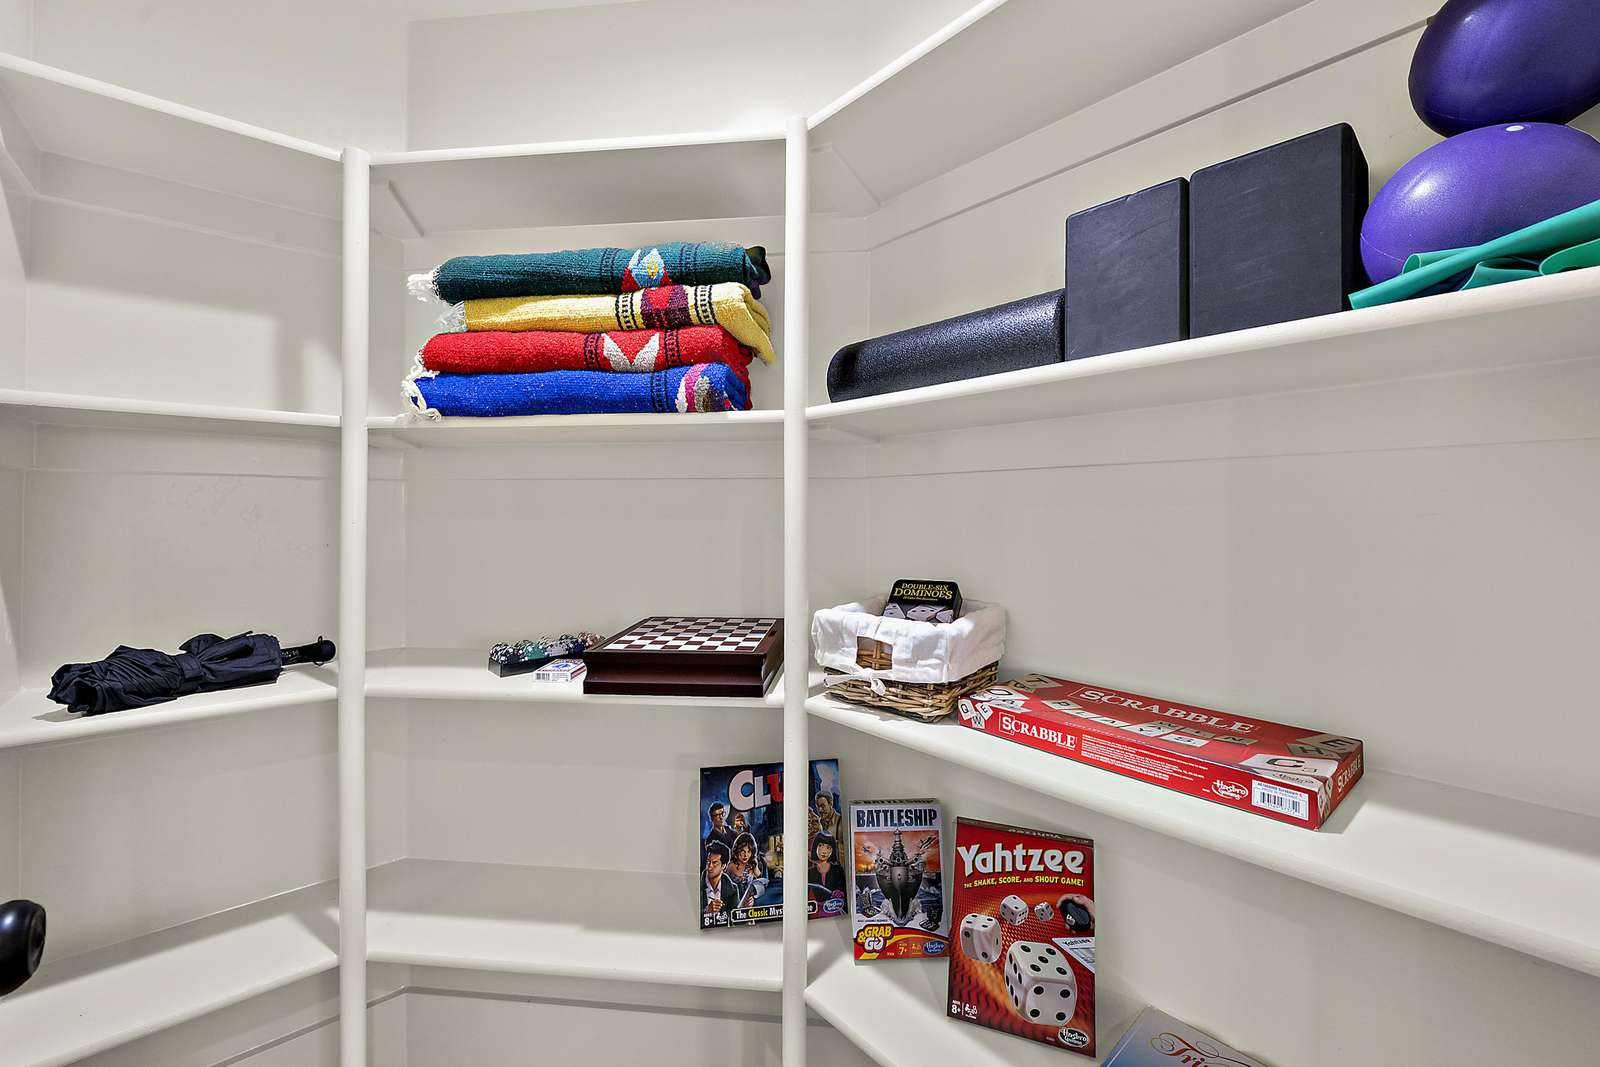 Closet space provided with games and more